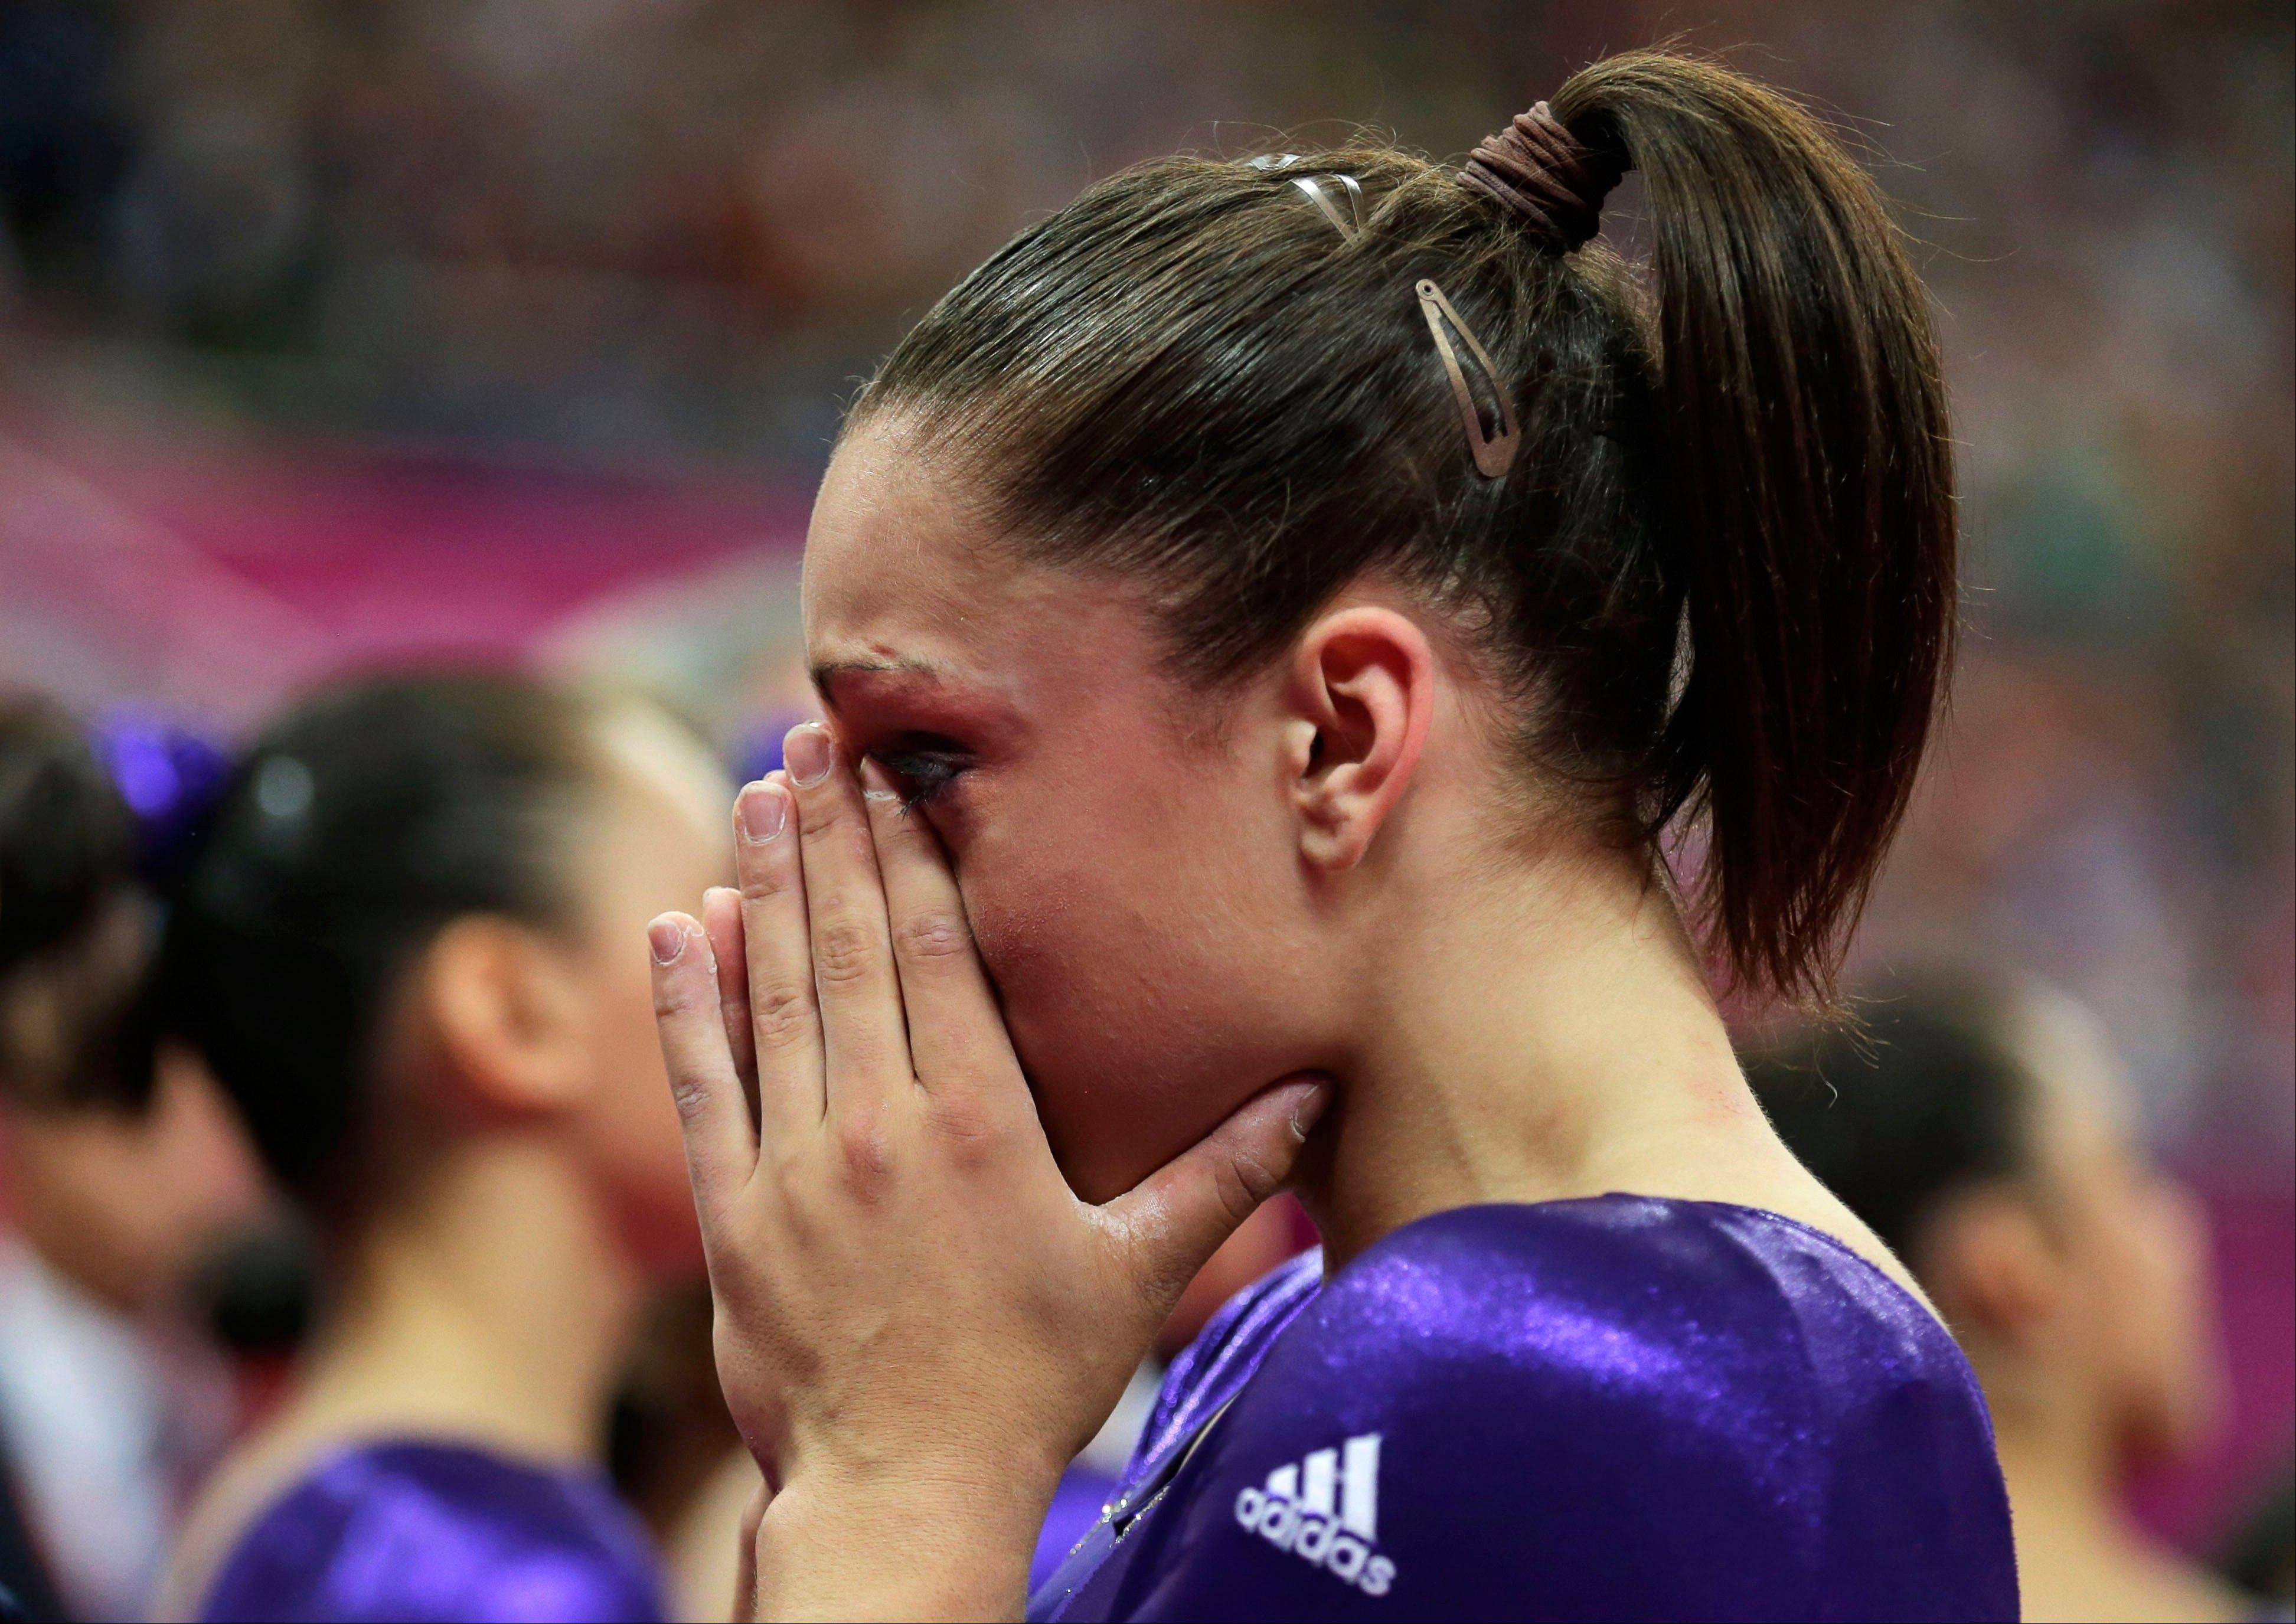 U.S. gymnast Jordyn Wieber cries Sunday after failing to qualify for the women's all-around finals during the Artistic Gymnastics women's qualification at the 2012 Summer Olympics in London.